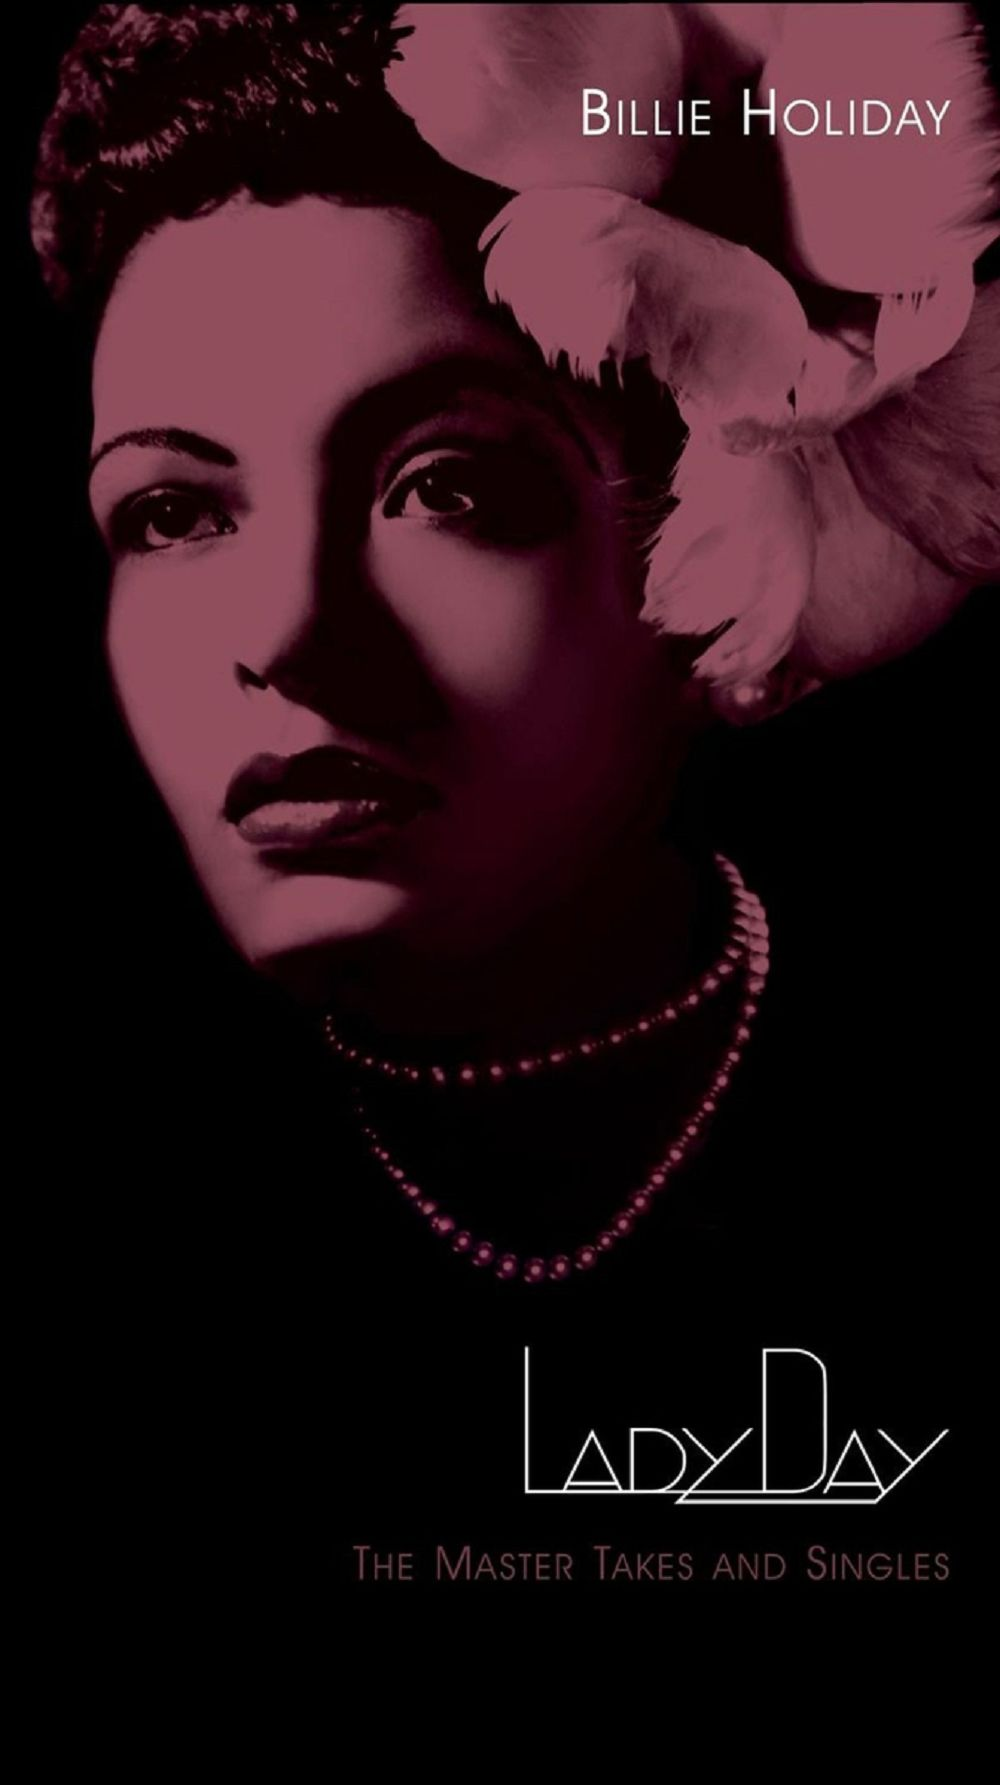 Billie Holiday</br>Lady Day &#8211; The Master Takes And Singles</br>Sony Music, 2015